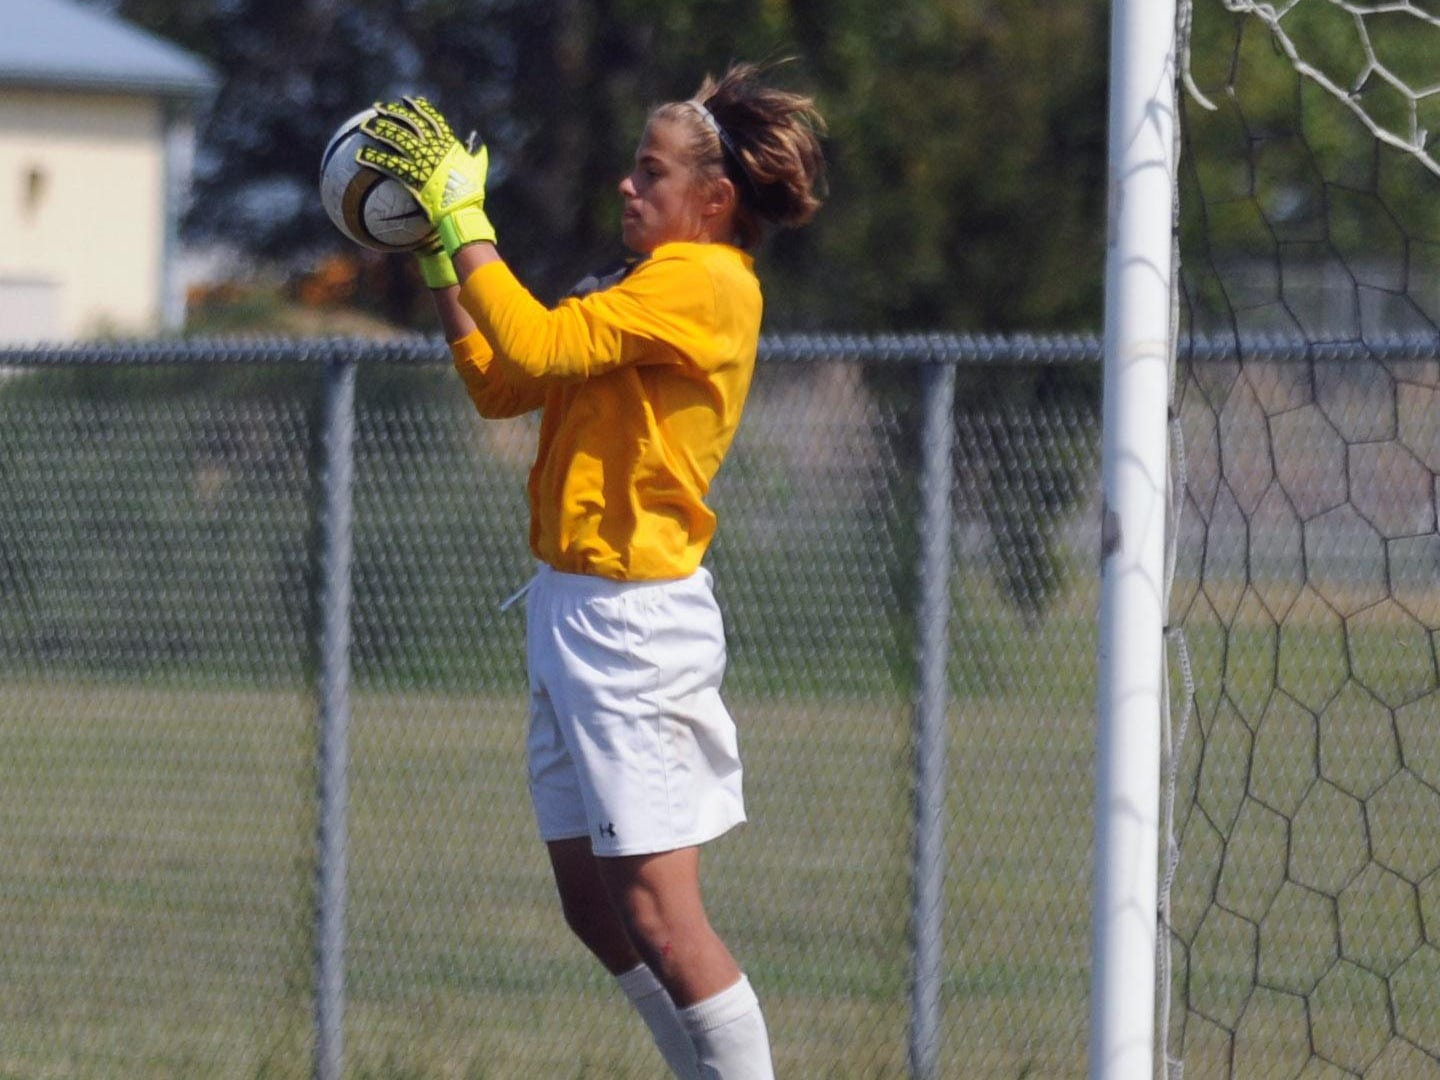 The Stephen Decatur goalkeeper comes up with a save against Indian River during the Cape Henlopen play day on Aug. 26.